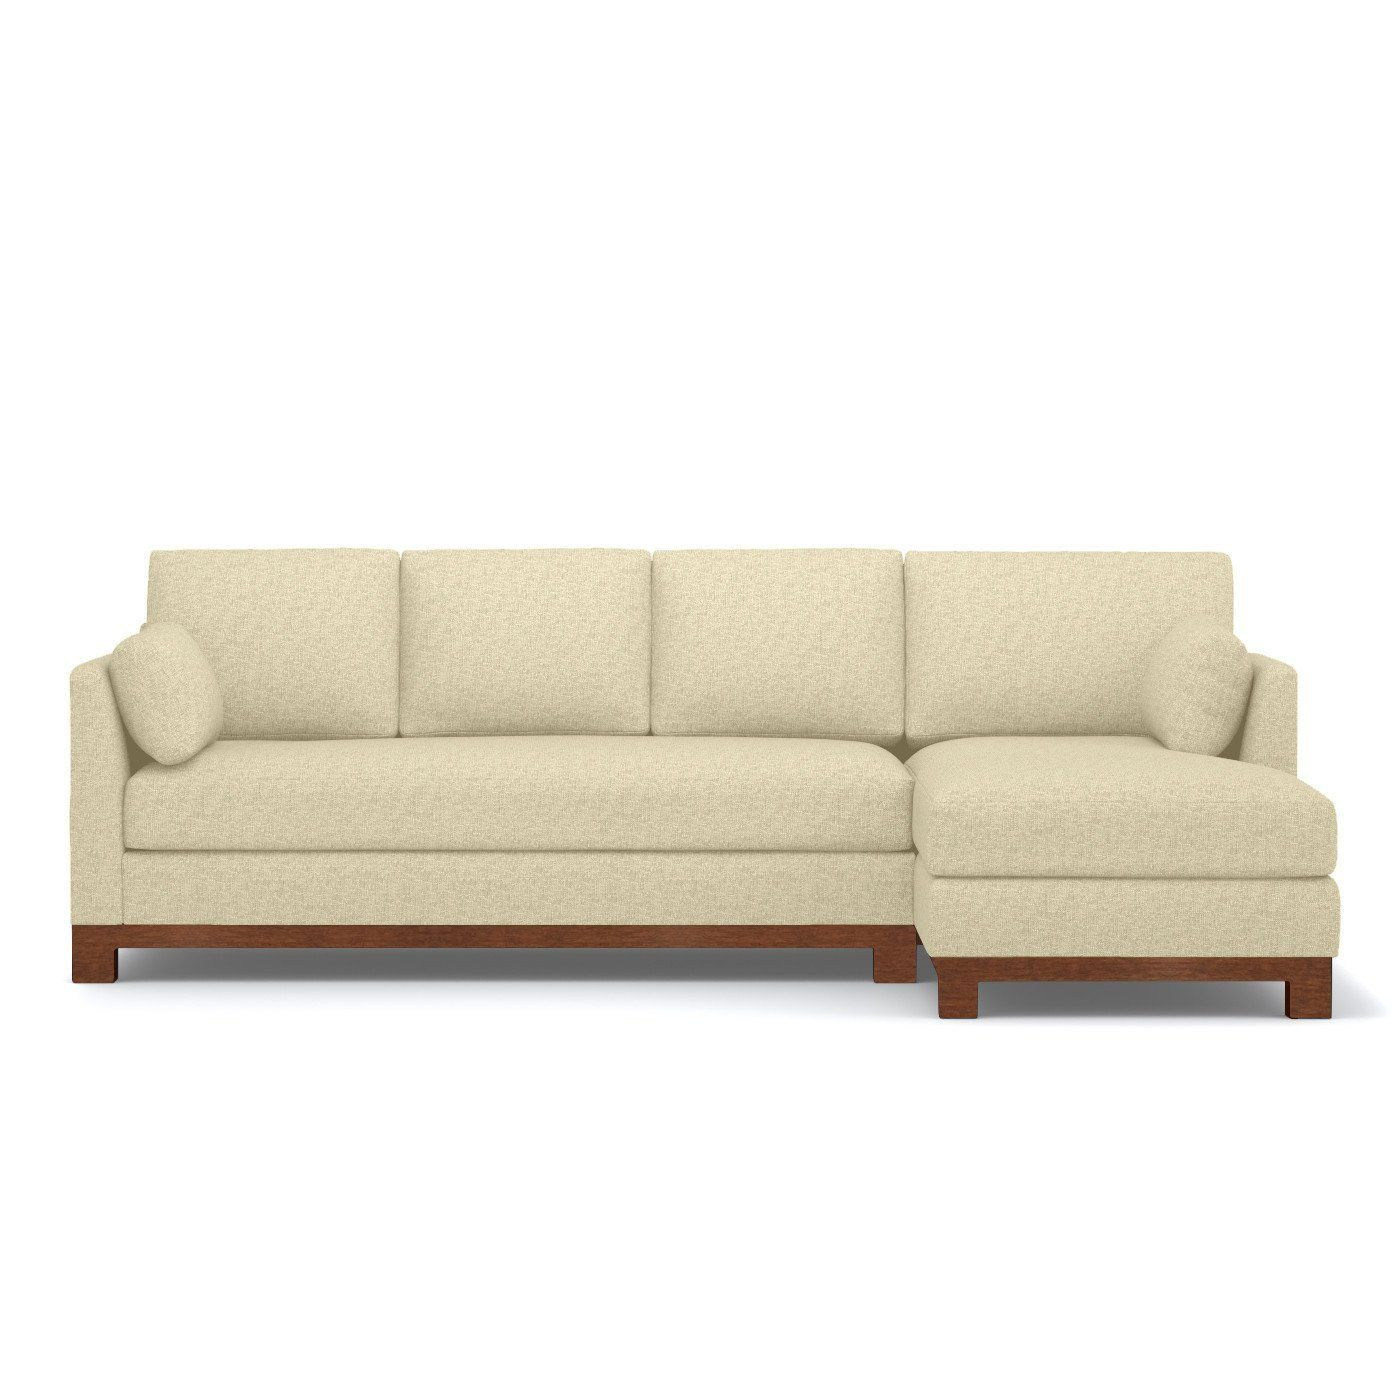 Outstanding Avalon 2Pc Sectional Sofa Leg Finish Pecan Inzonedesignstudio Interior Chair Design Inzonedesignstudiocom